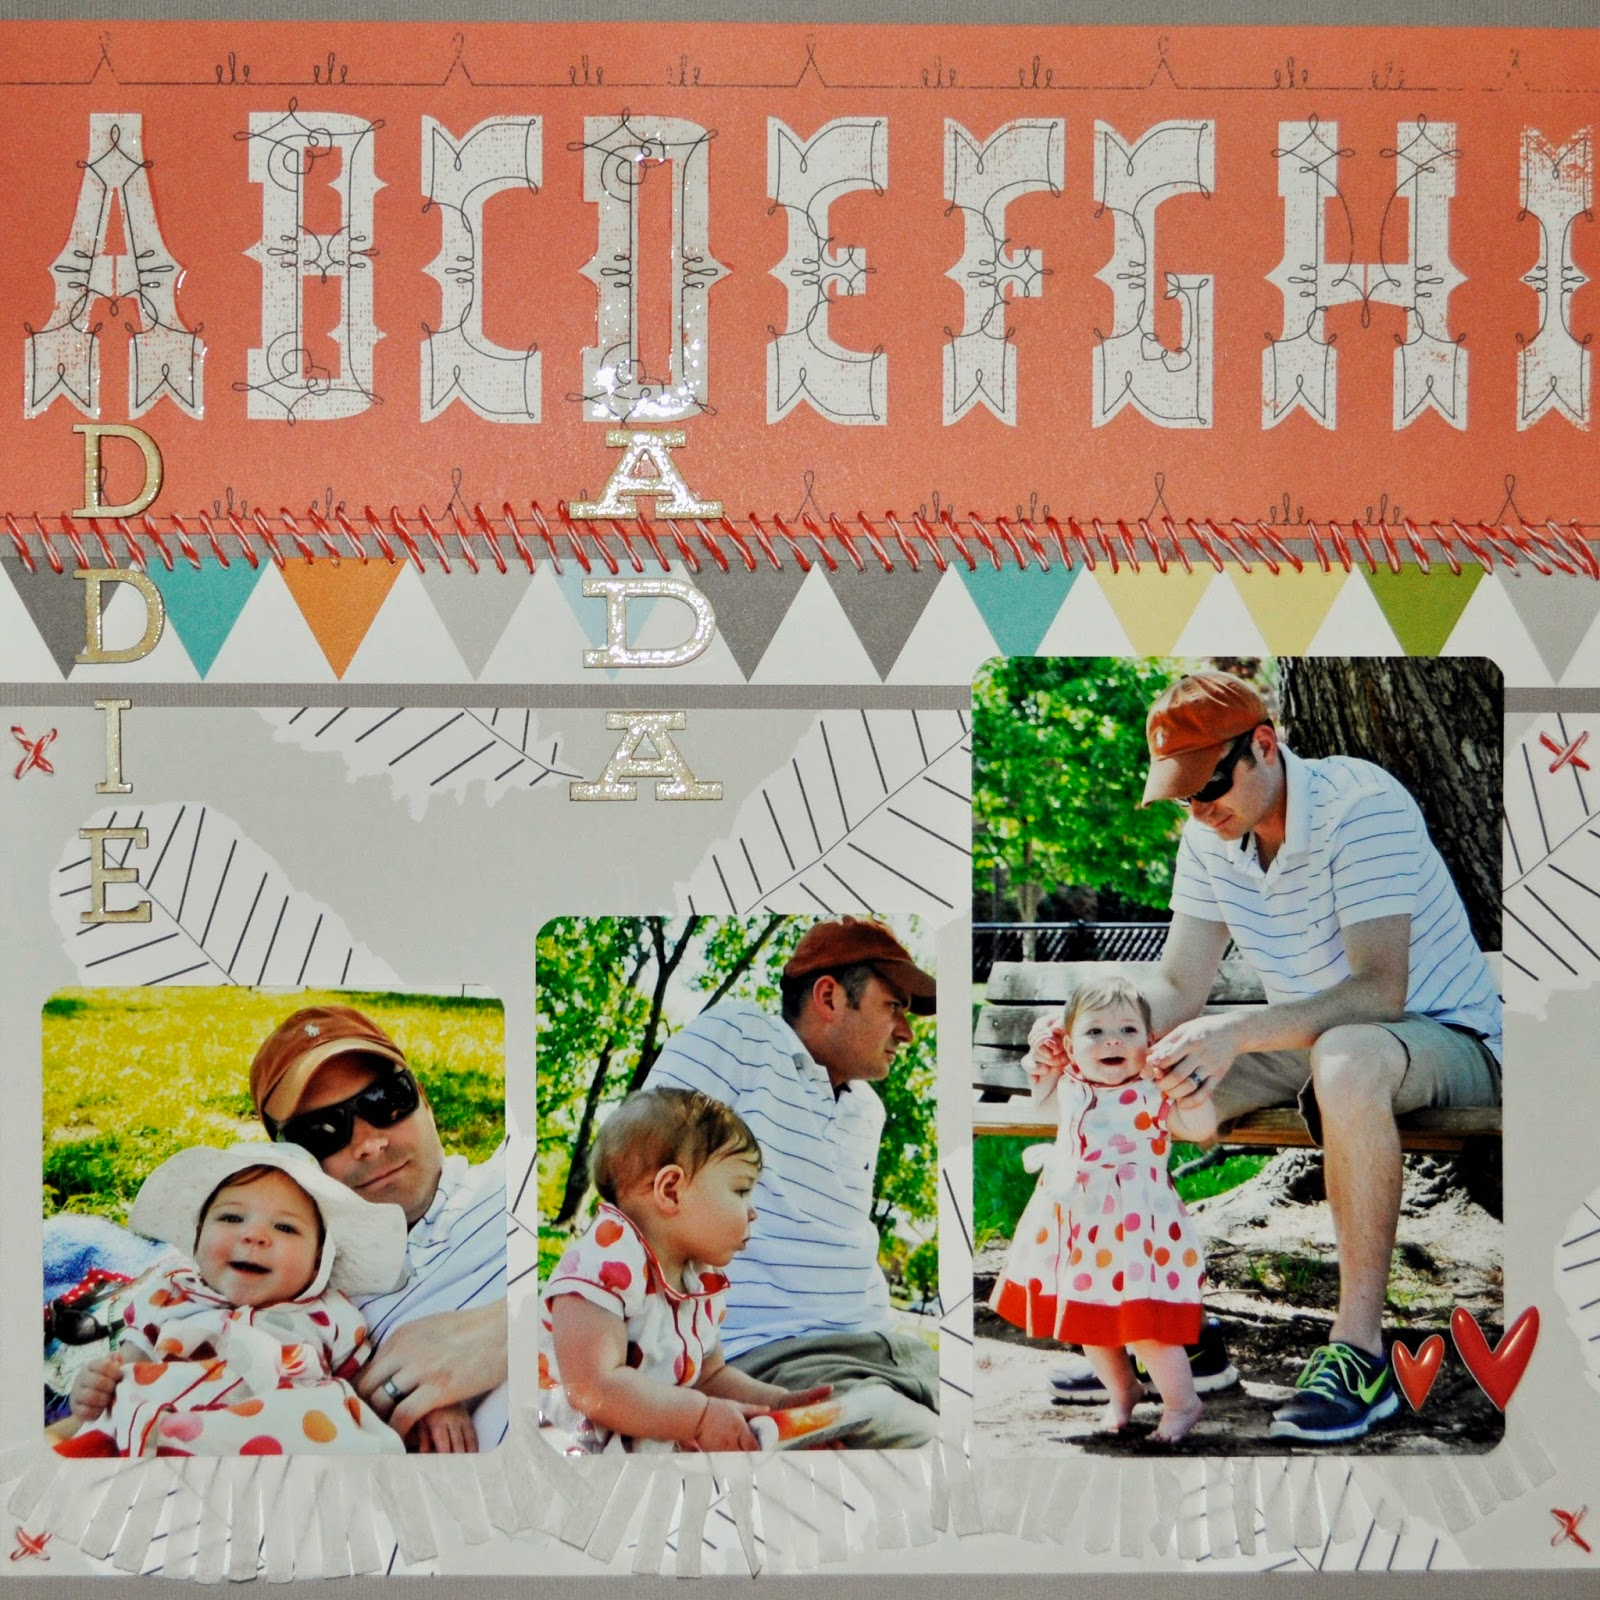 studio calico monthly kit penny arcade 12x12 scrapbook layout family theme father and daughter orange grey teal yellow hand stitched wood veneer letters ranger glossy accents feathers crepe paper frills